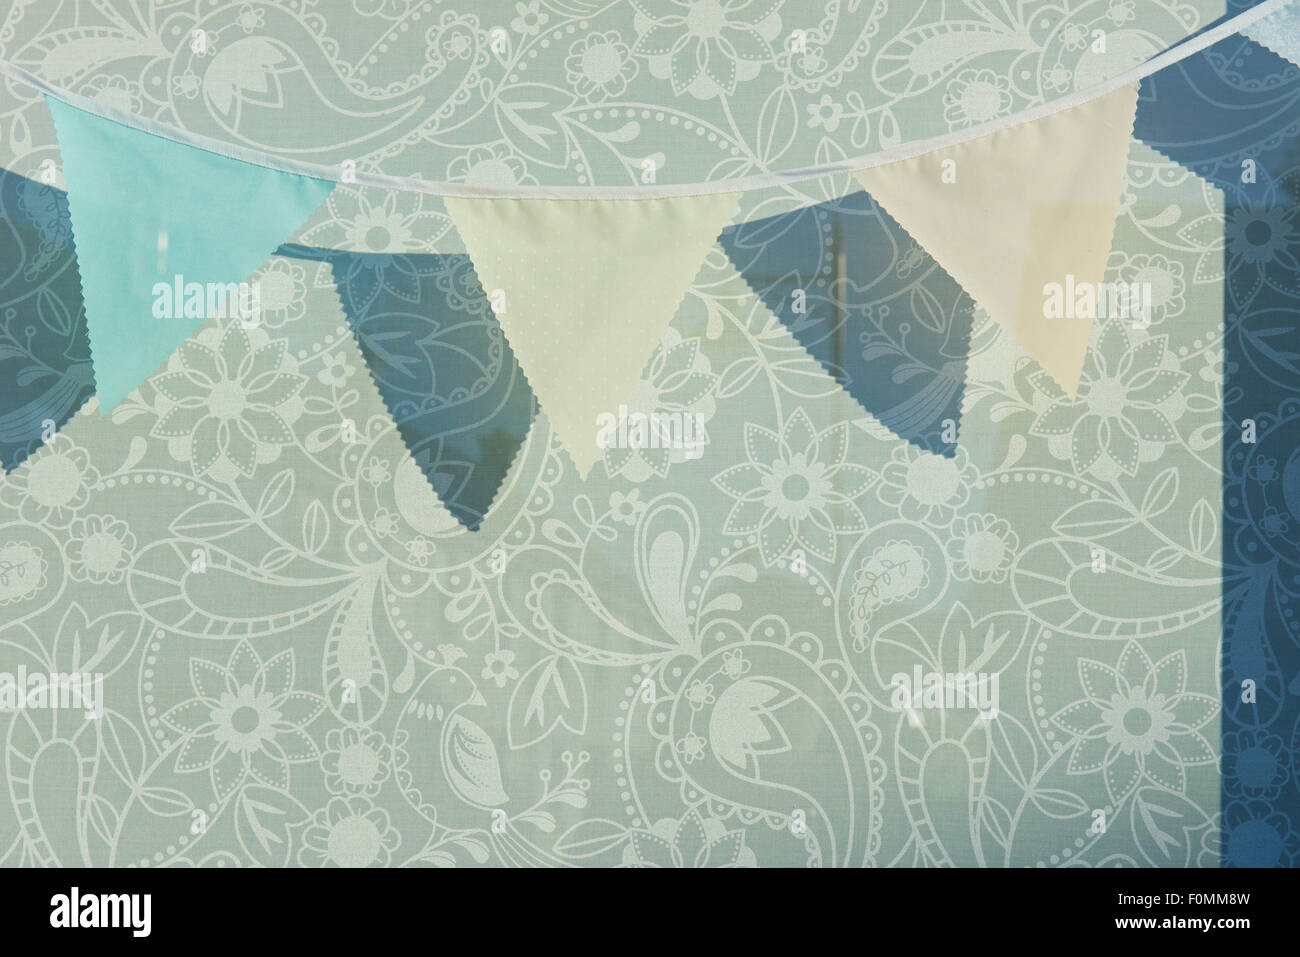 Bunting hanging in shop window - Stock Image